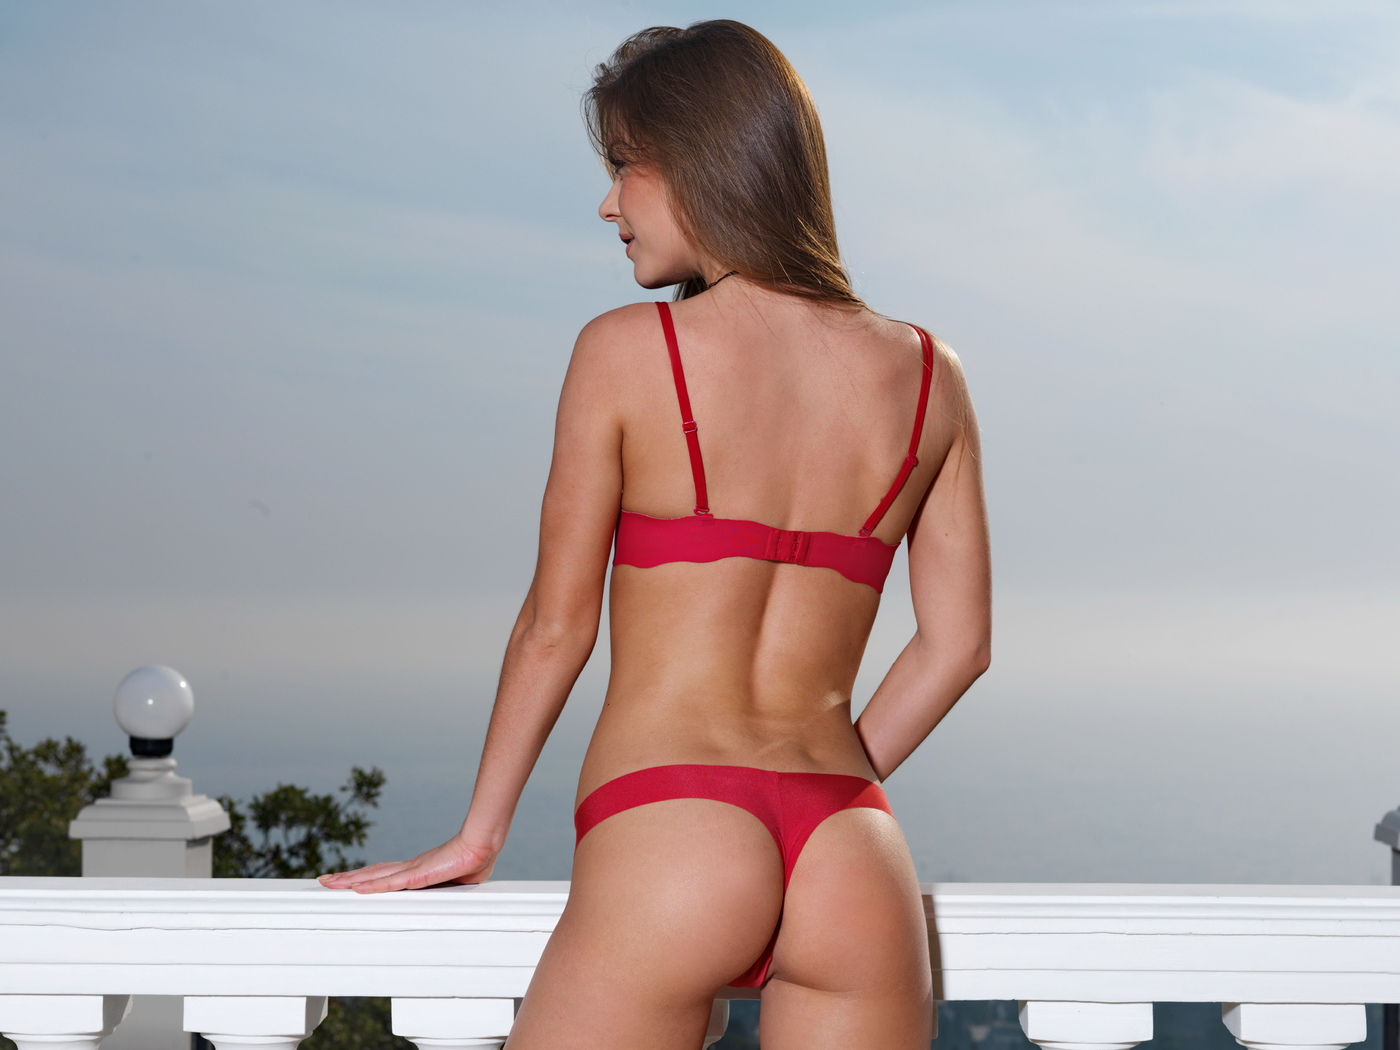 lily c, ass, red lingerie